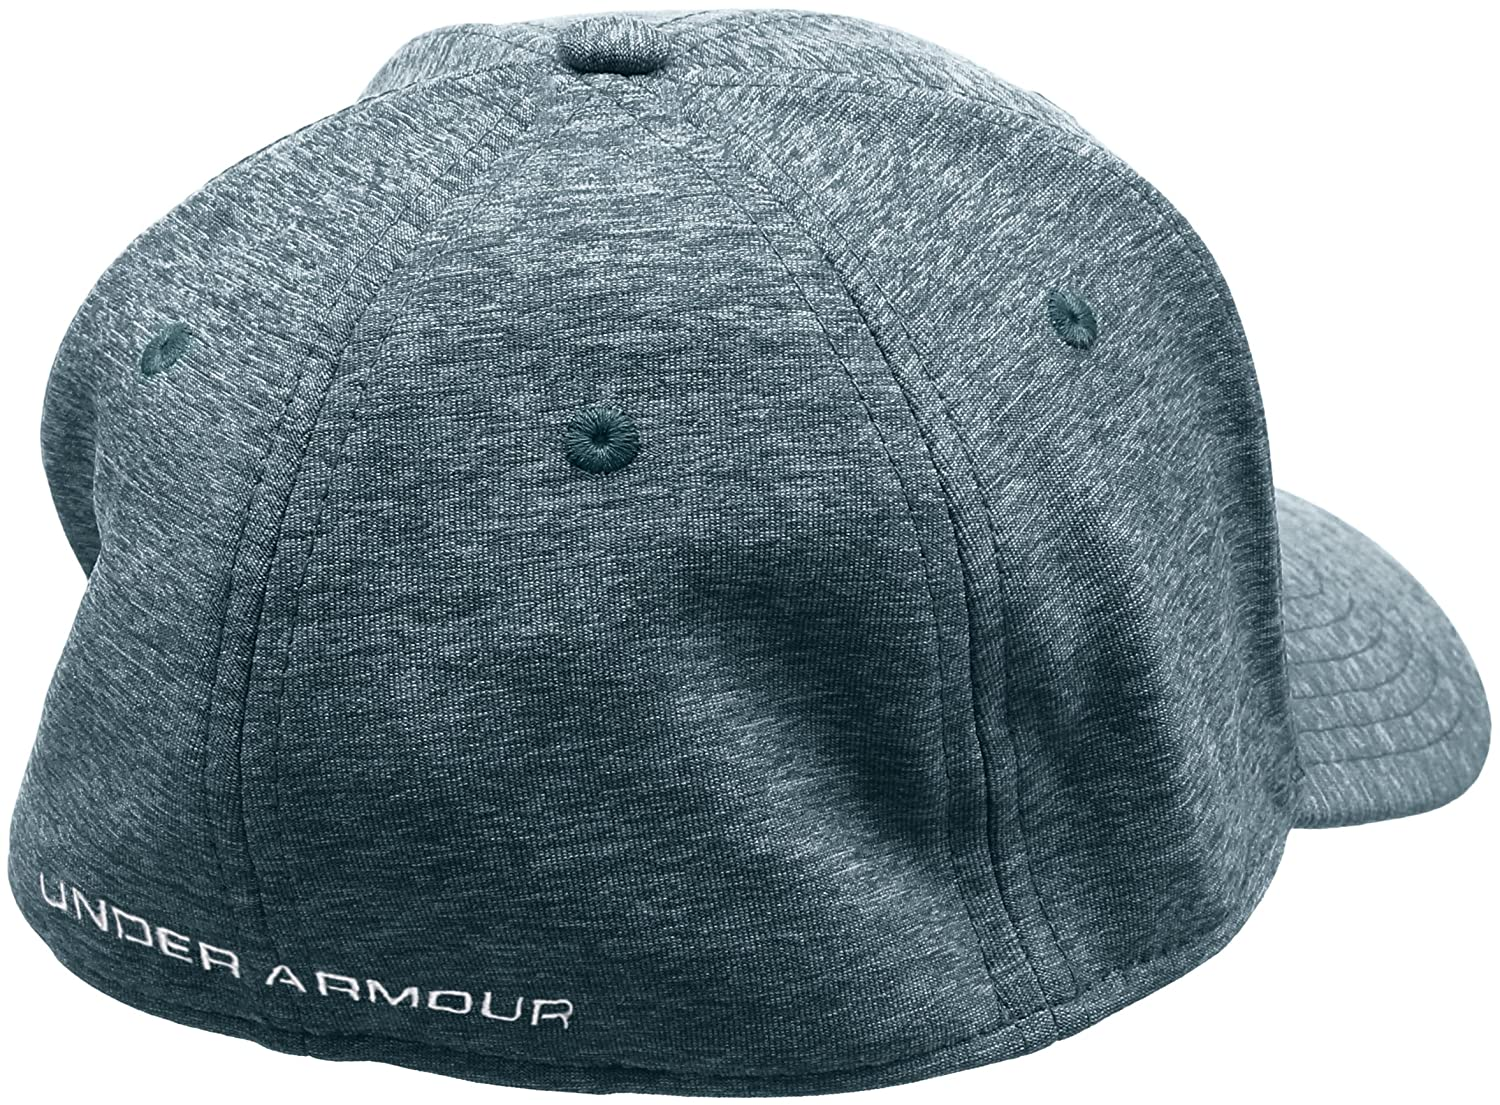 902c0895b5a Amazon.com  Under Armour Men s Armour Twist Cap  UNDER ARMOUR  Sports    Outdoors